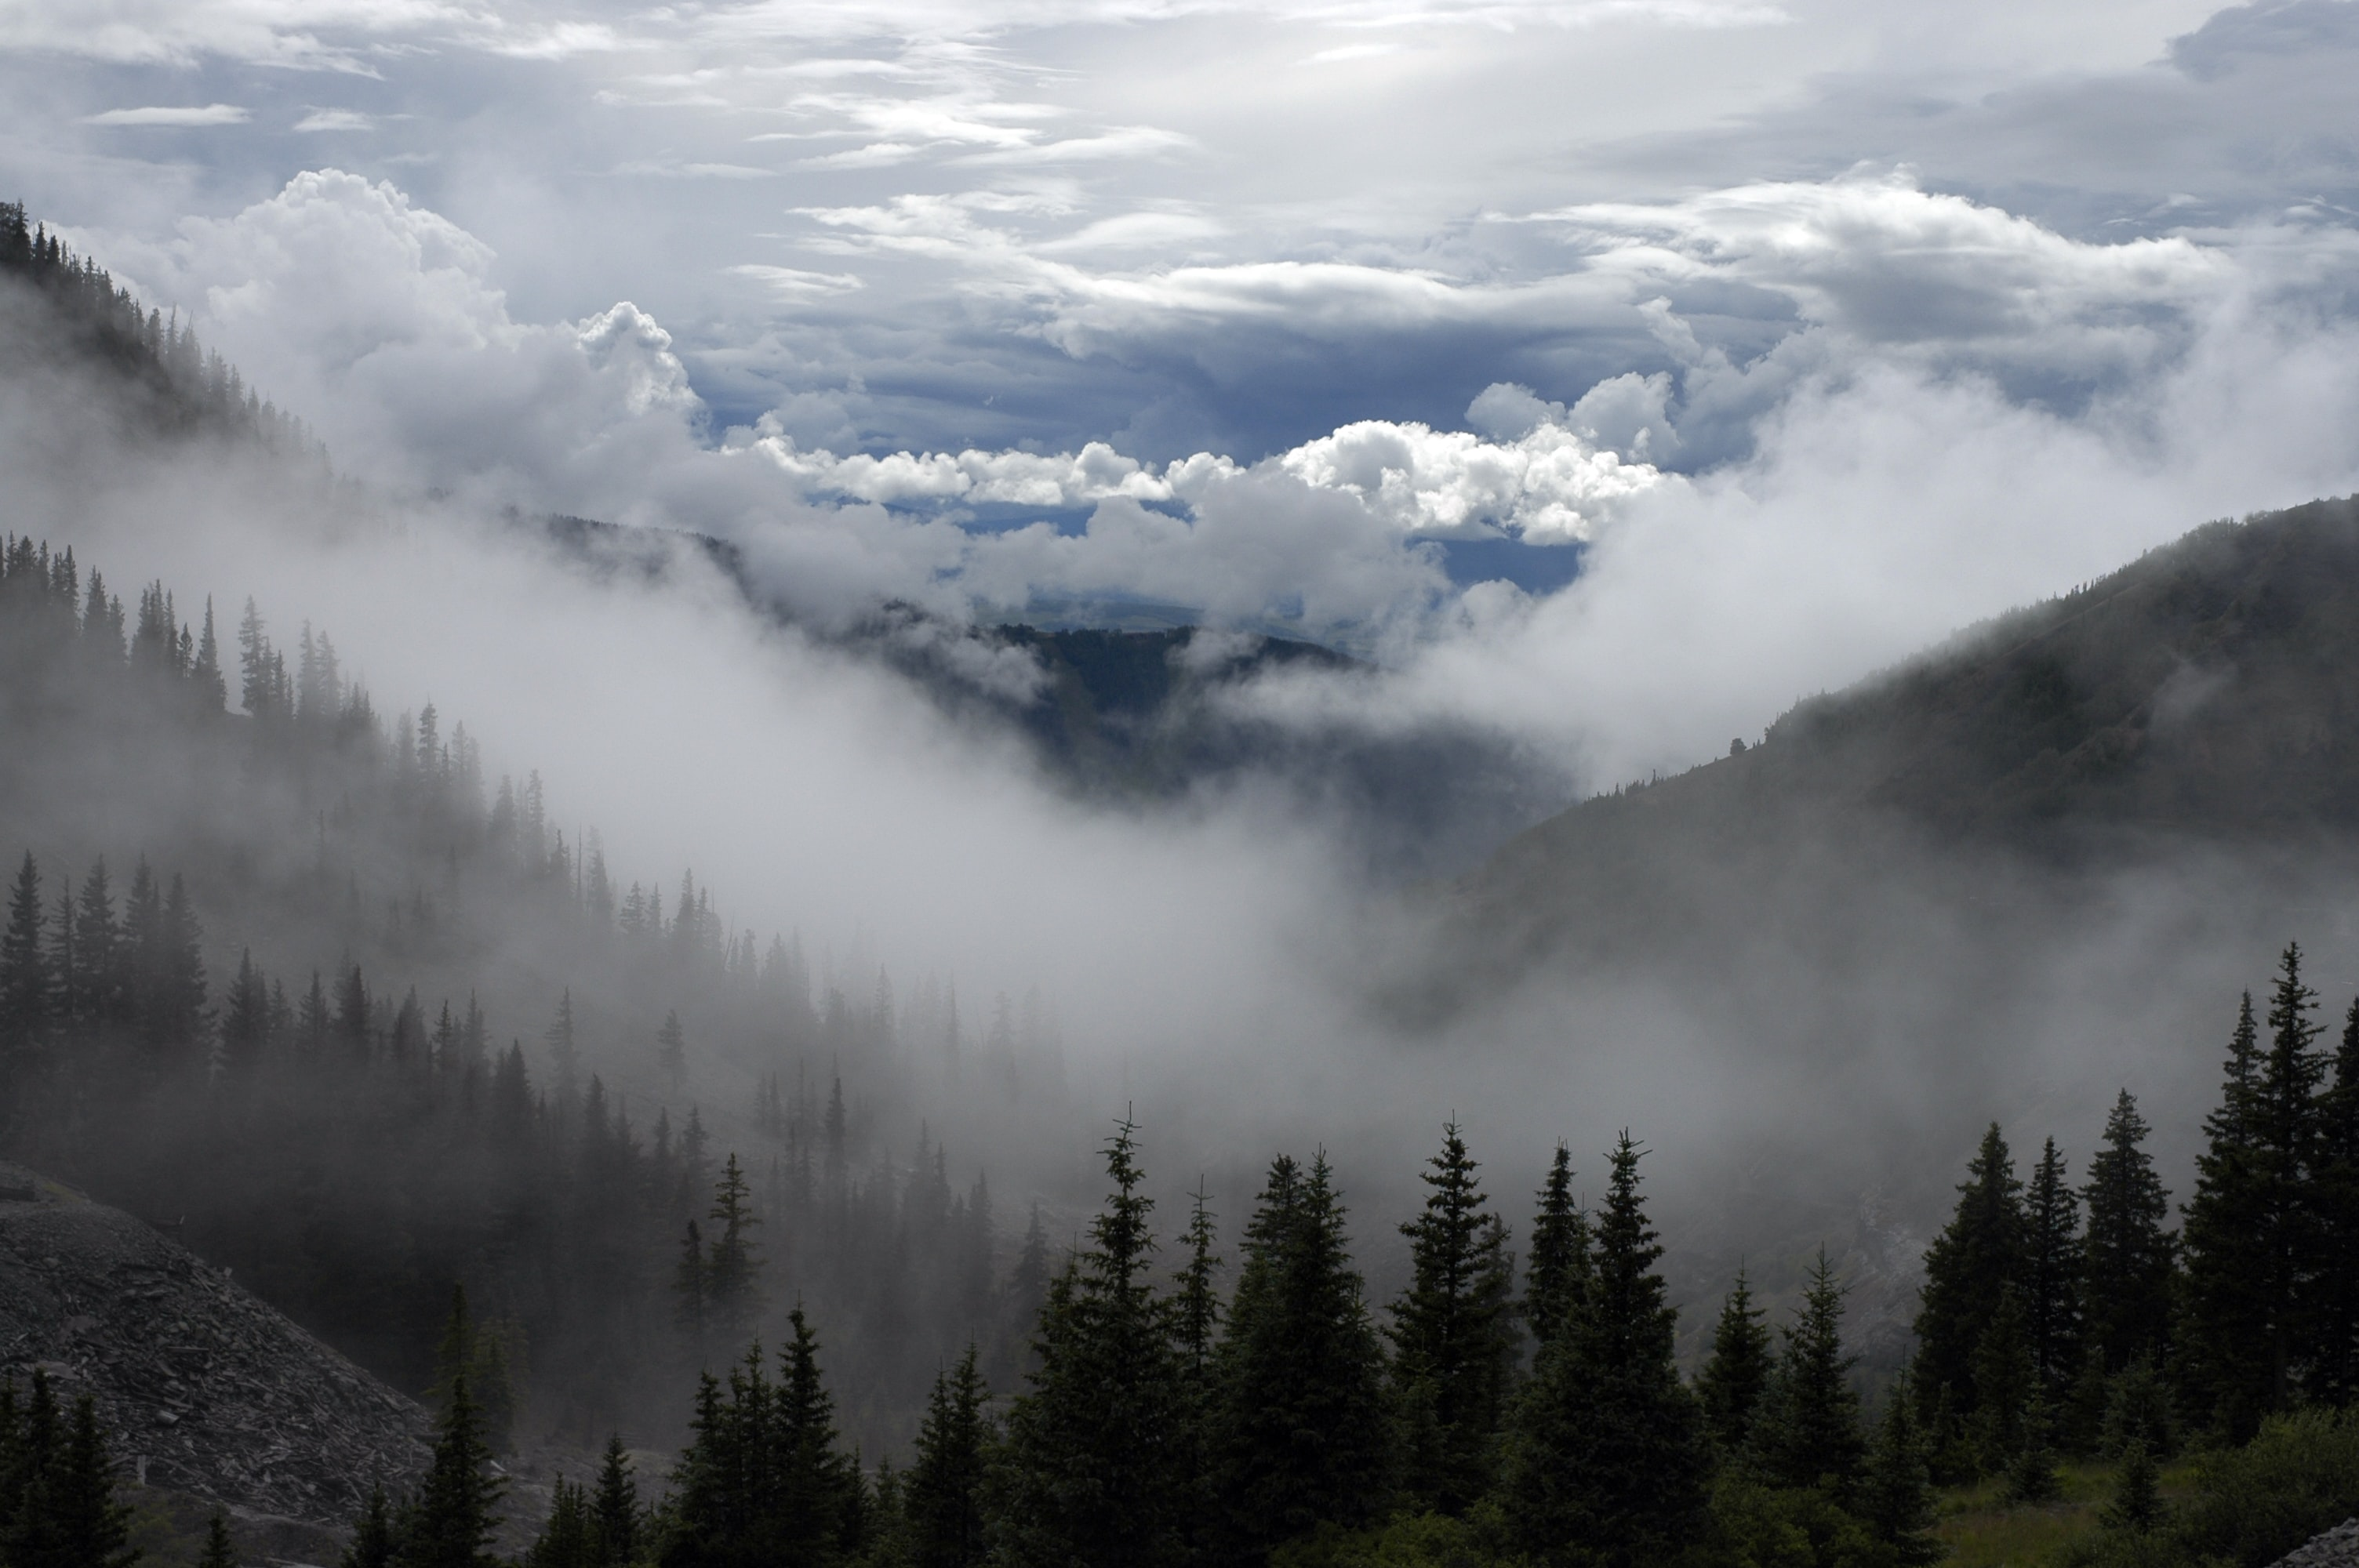 Mountainside view of fog and clouds gathering at the foot of the mountain